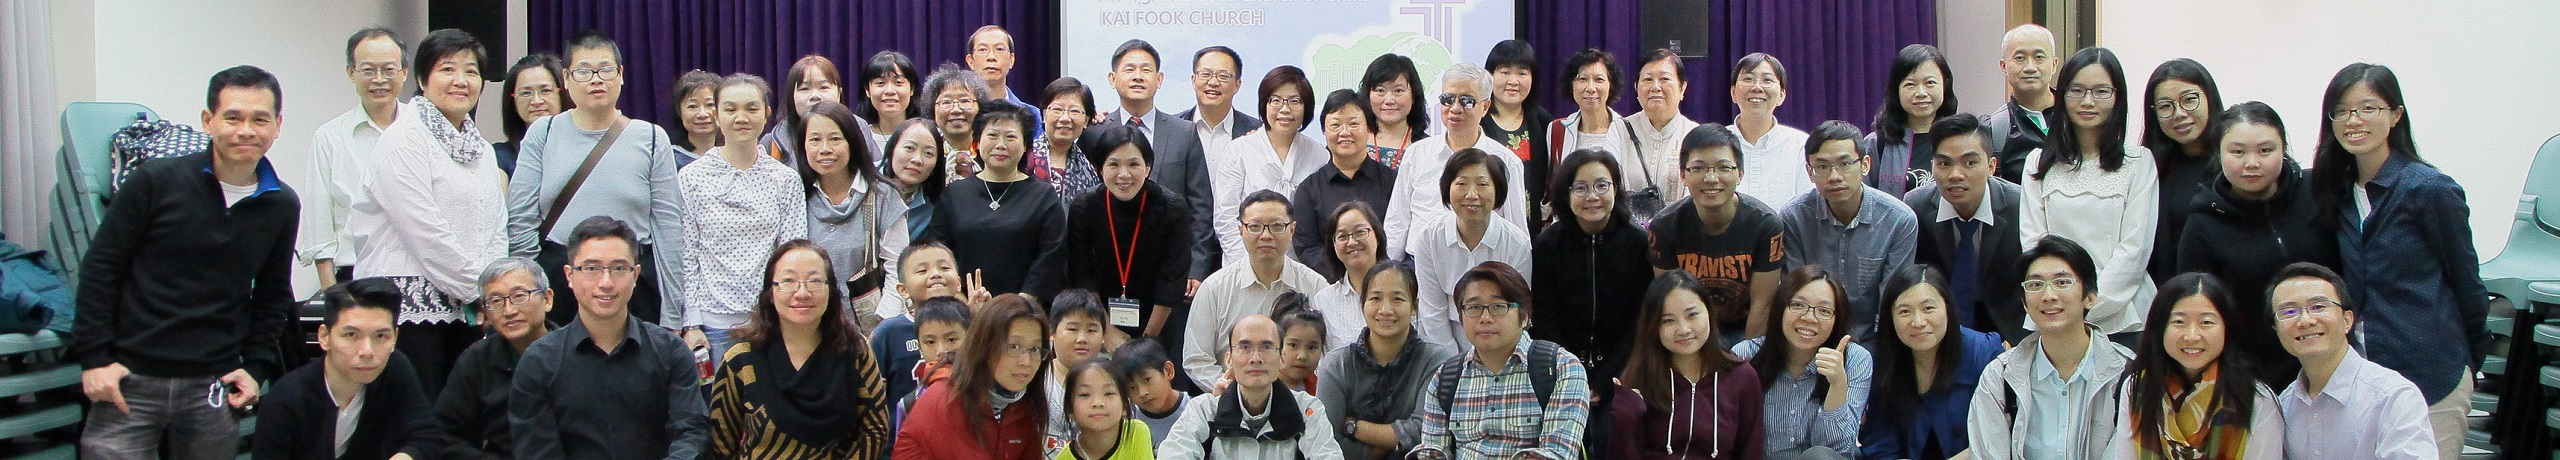 inner-banner-kfc-group-photo.jpg